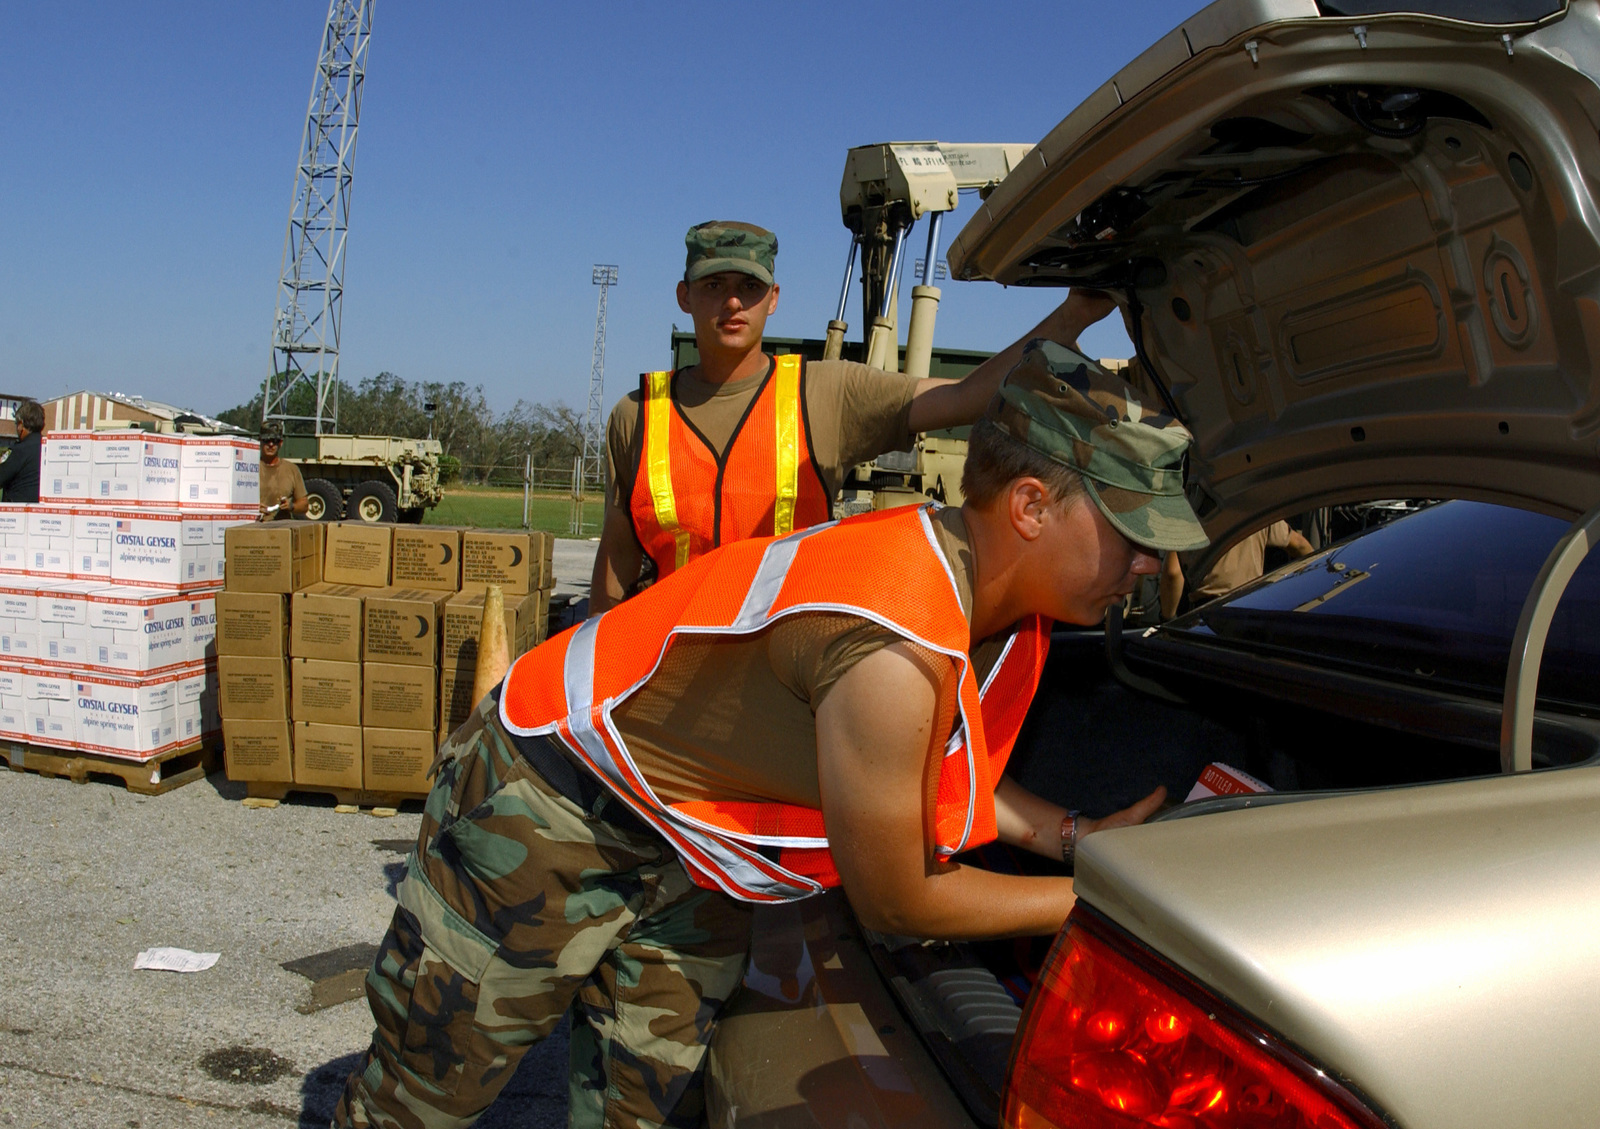 Florida Army National Guard Privates Katie Boldizar and Billy Knight, 3rd Battalion ' 116th Field Artillery, Arcadia, Fla., load Meals-Ready-to-Eat into civilian vehicles of the local community members affected by Hurricane Ivan at a high school in Pensacola, Florida on Sept. 18, 2004. (U.S. Air Force photo by STAFF Sergeant Sarayuth Pinthong)(Released)